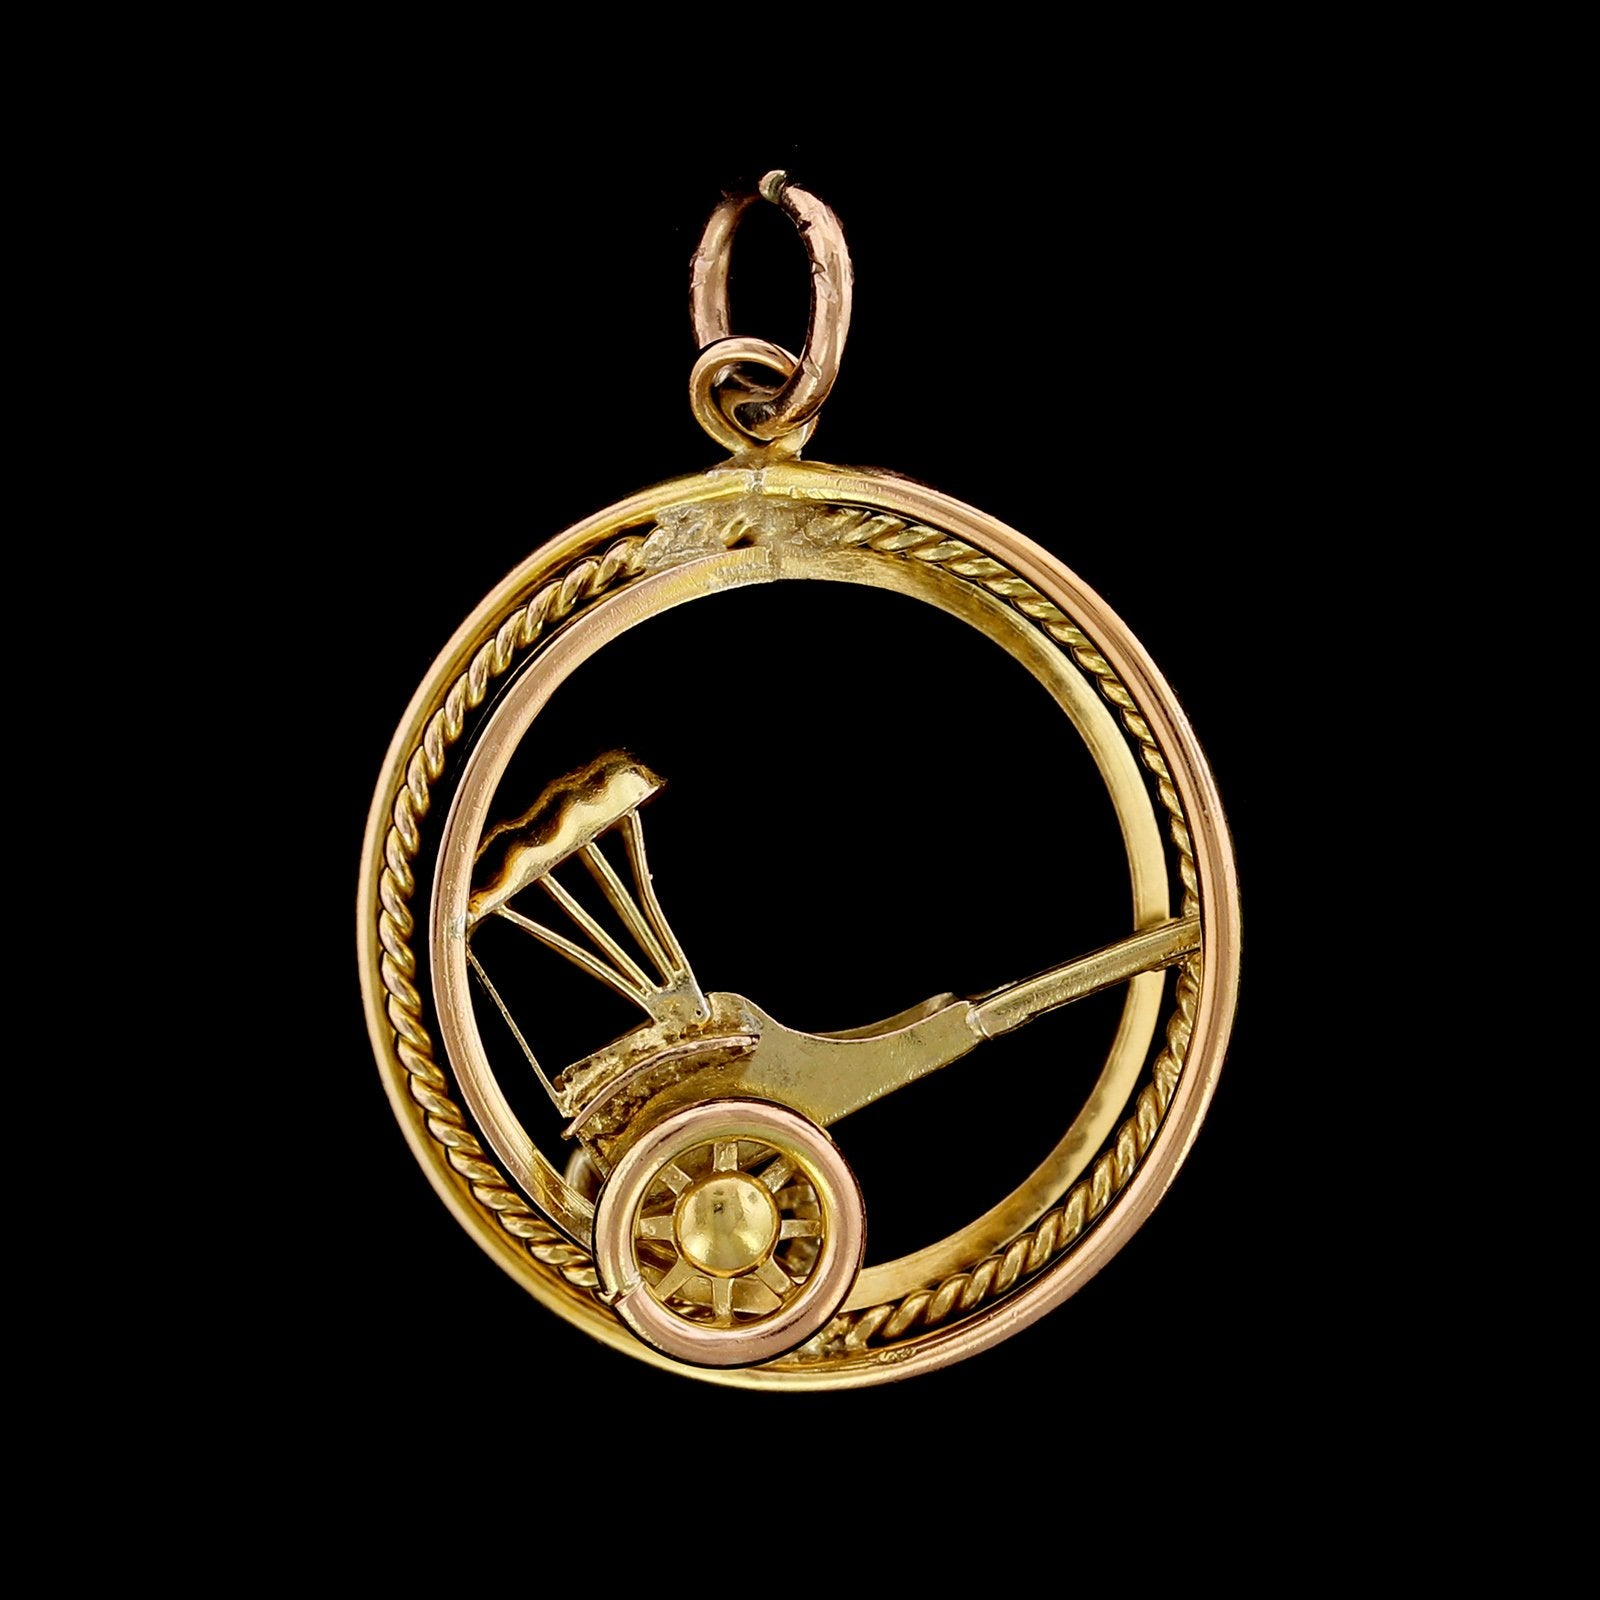 14K Yellow Gold Estate Rickshaw Charm